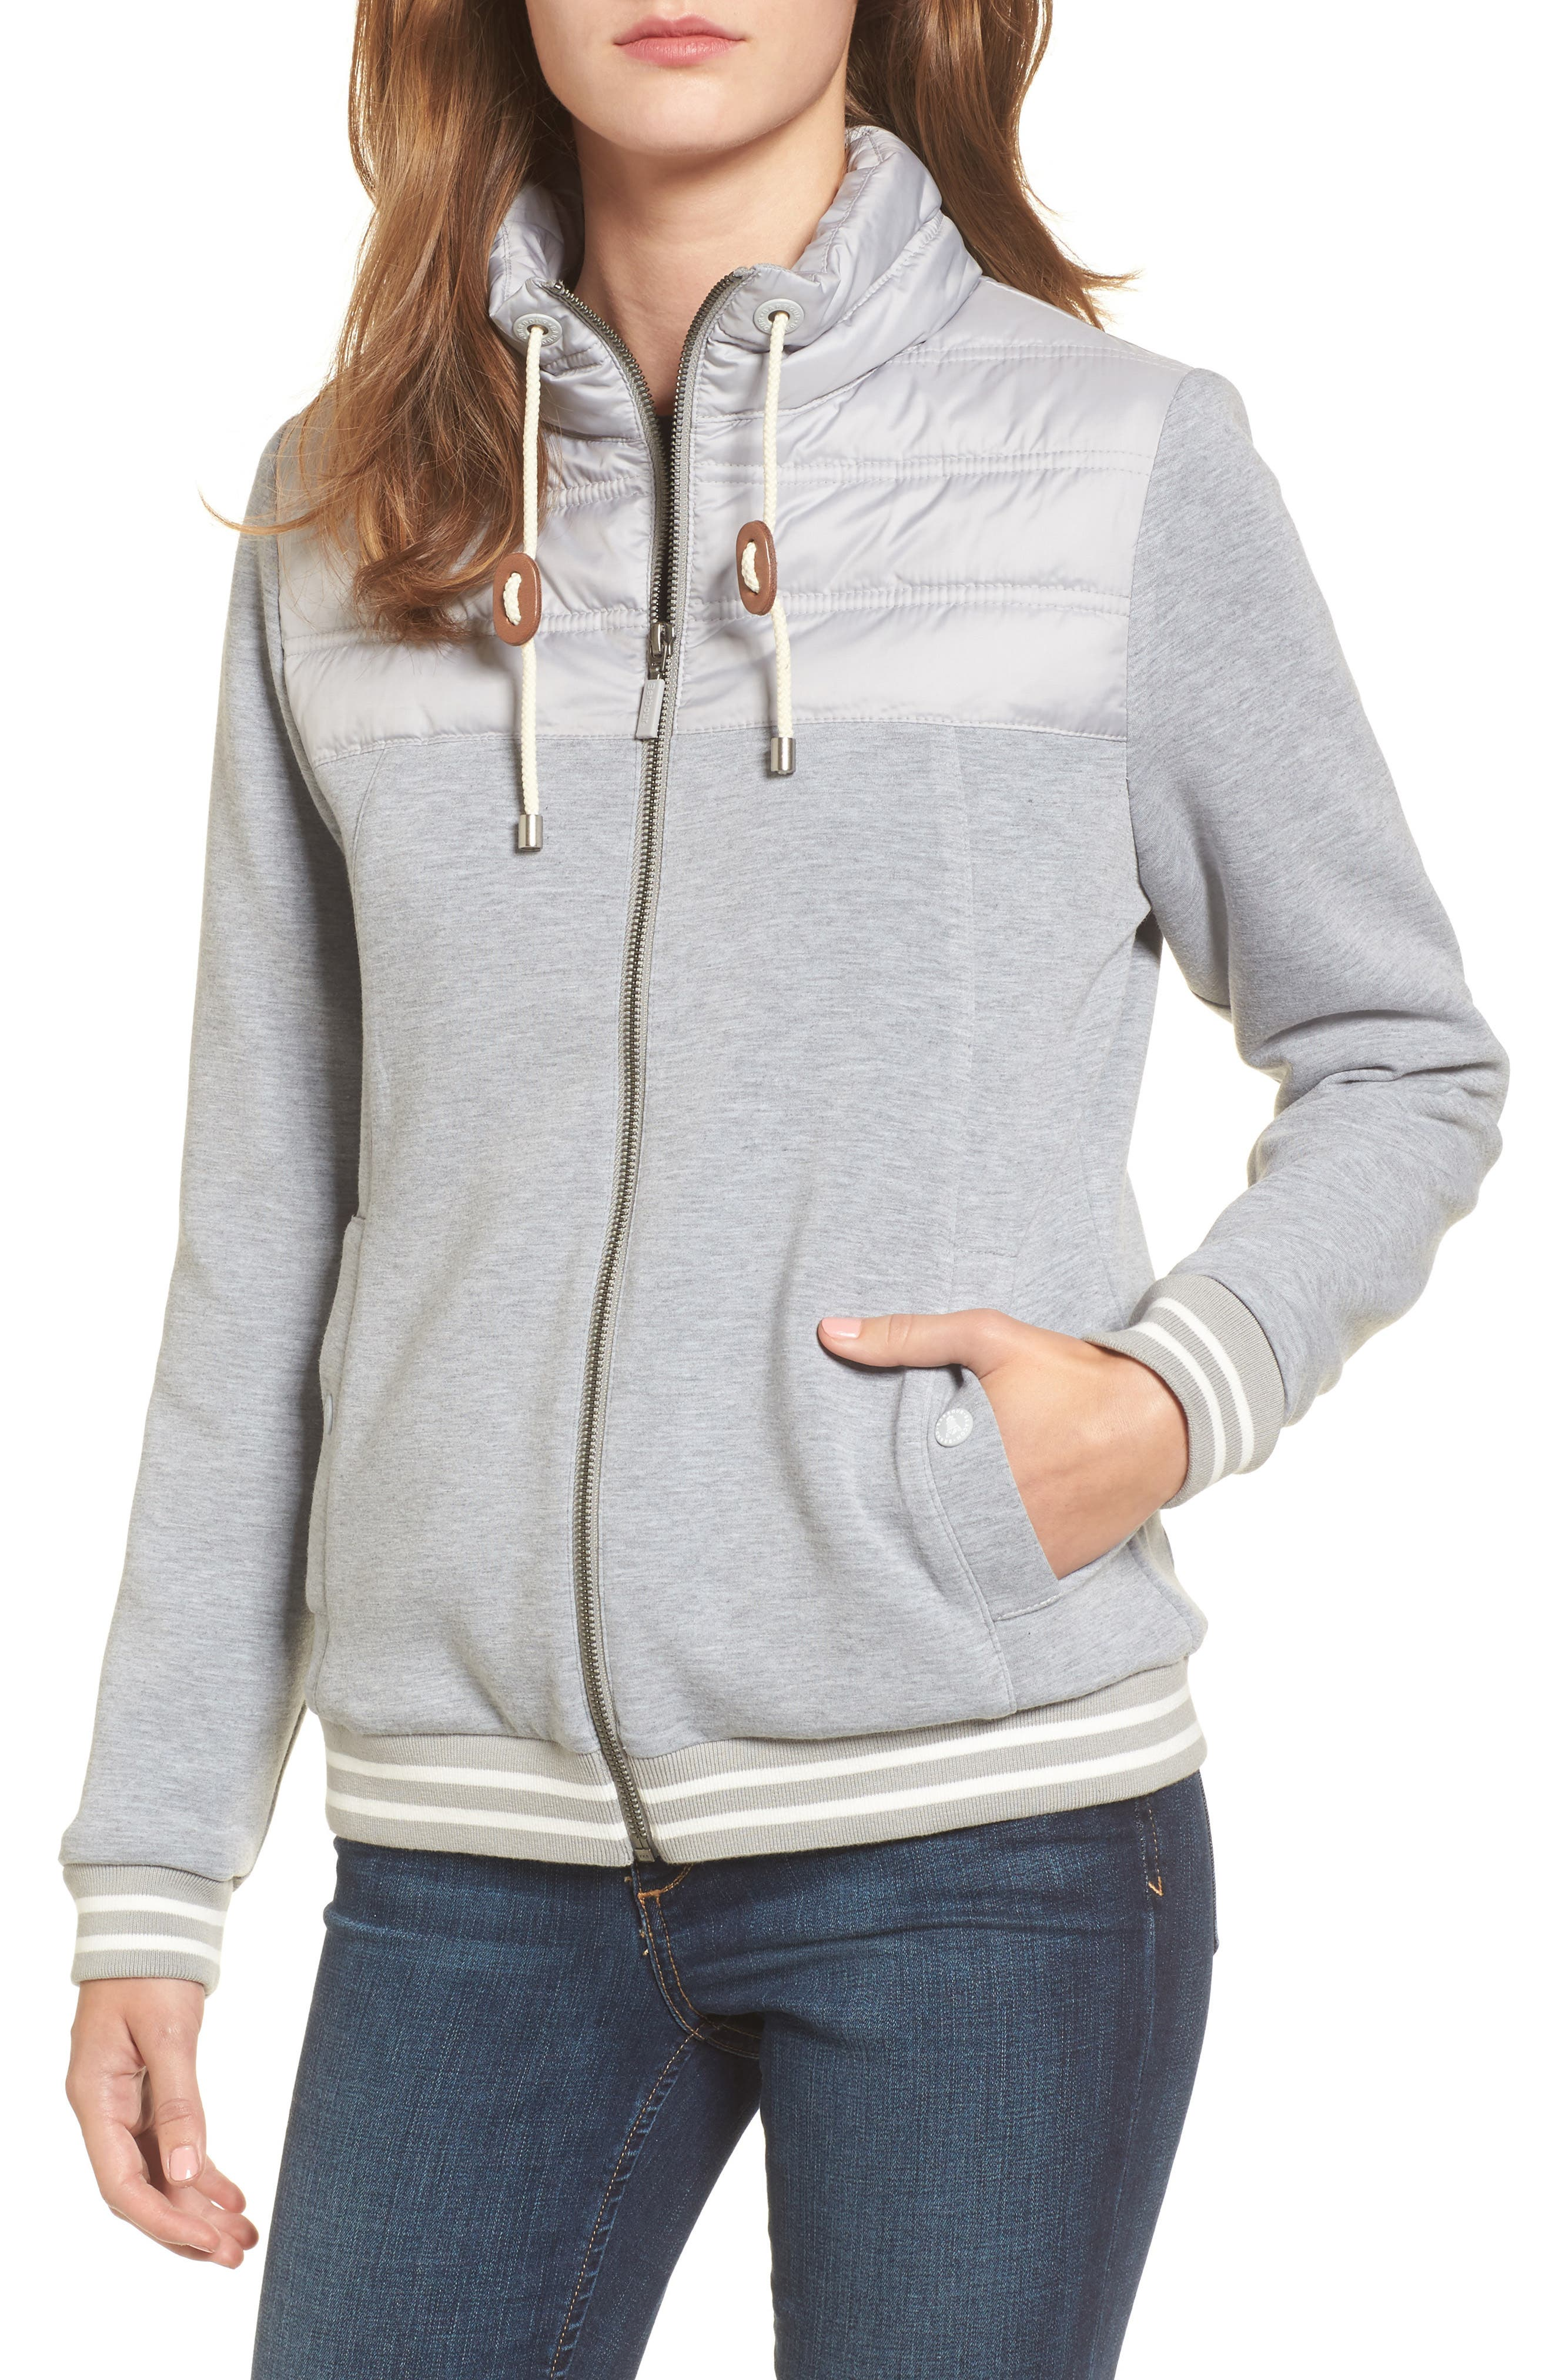 Selsey Zip Sweater,                         Main,                         color, 050